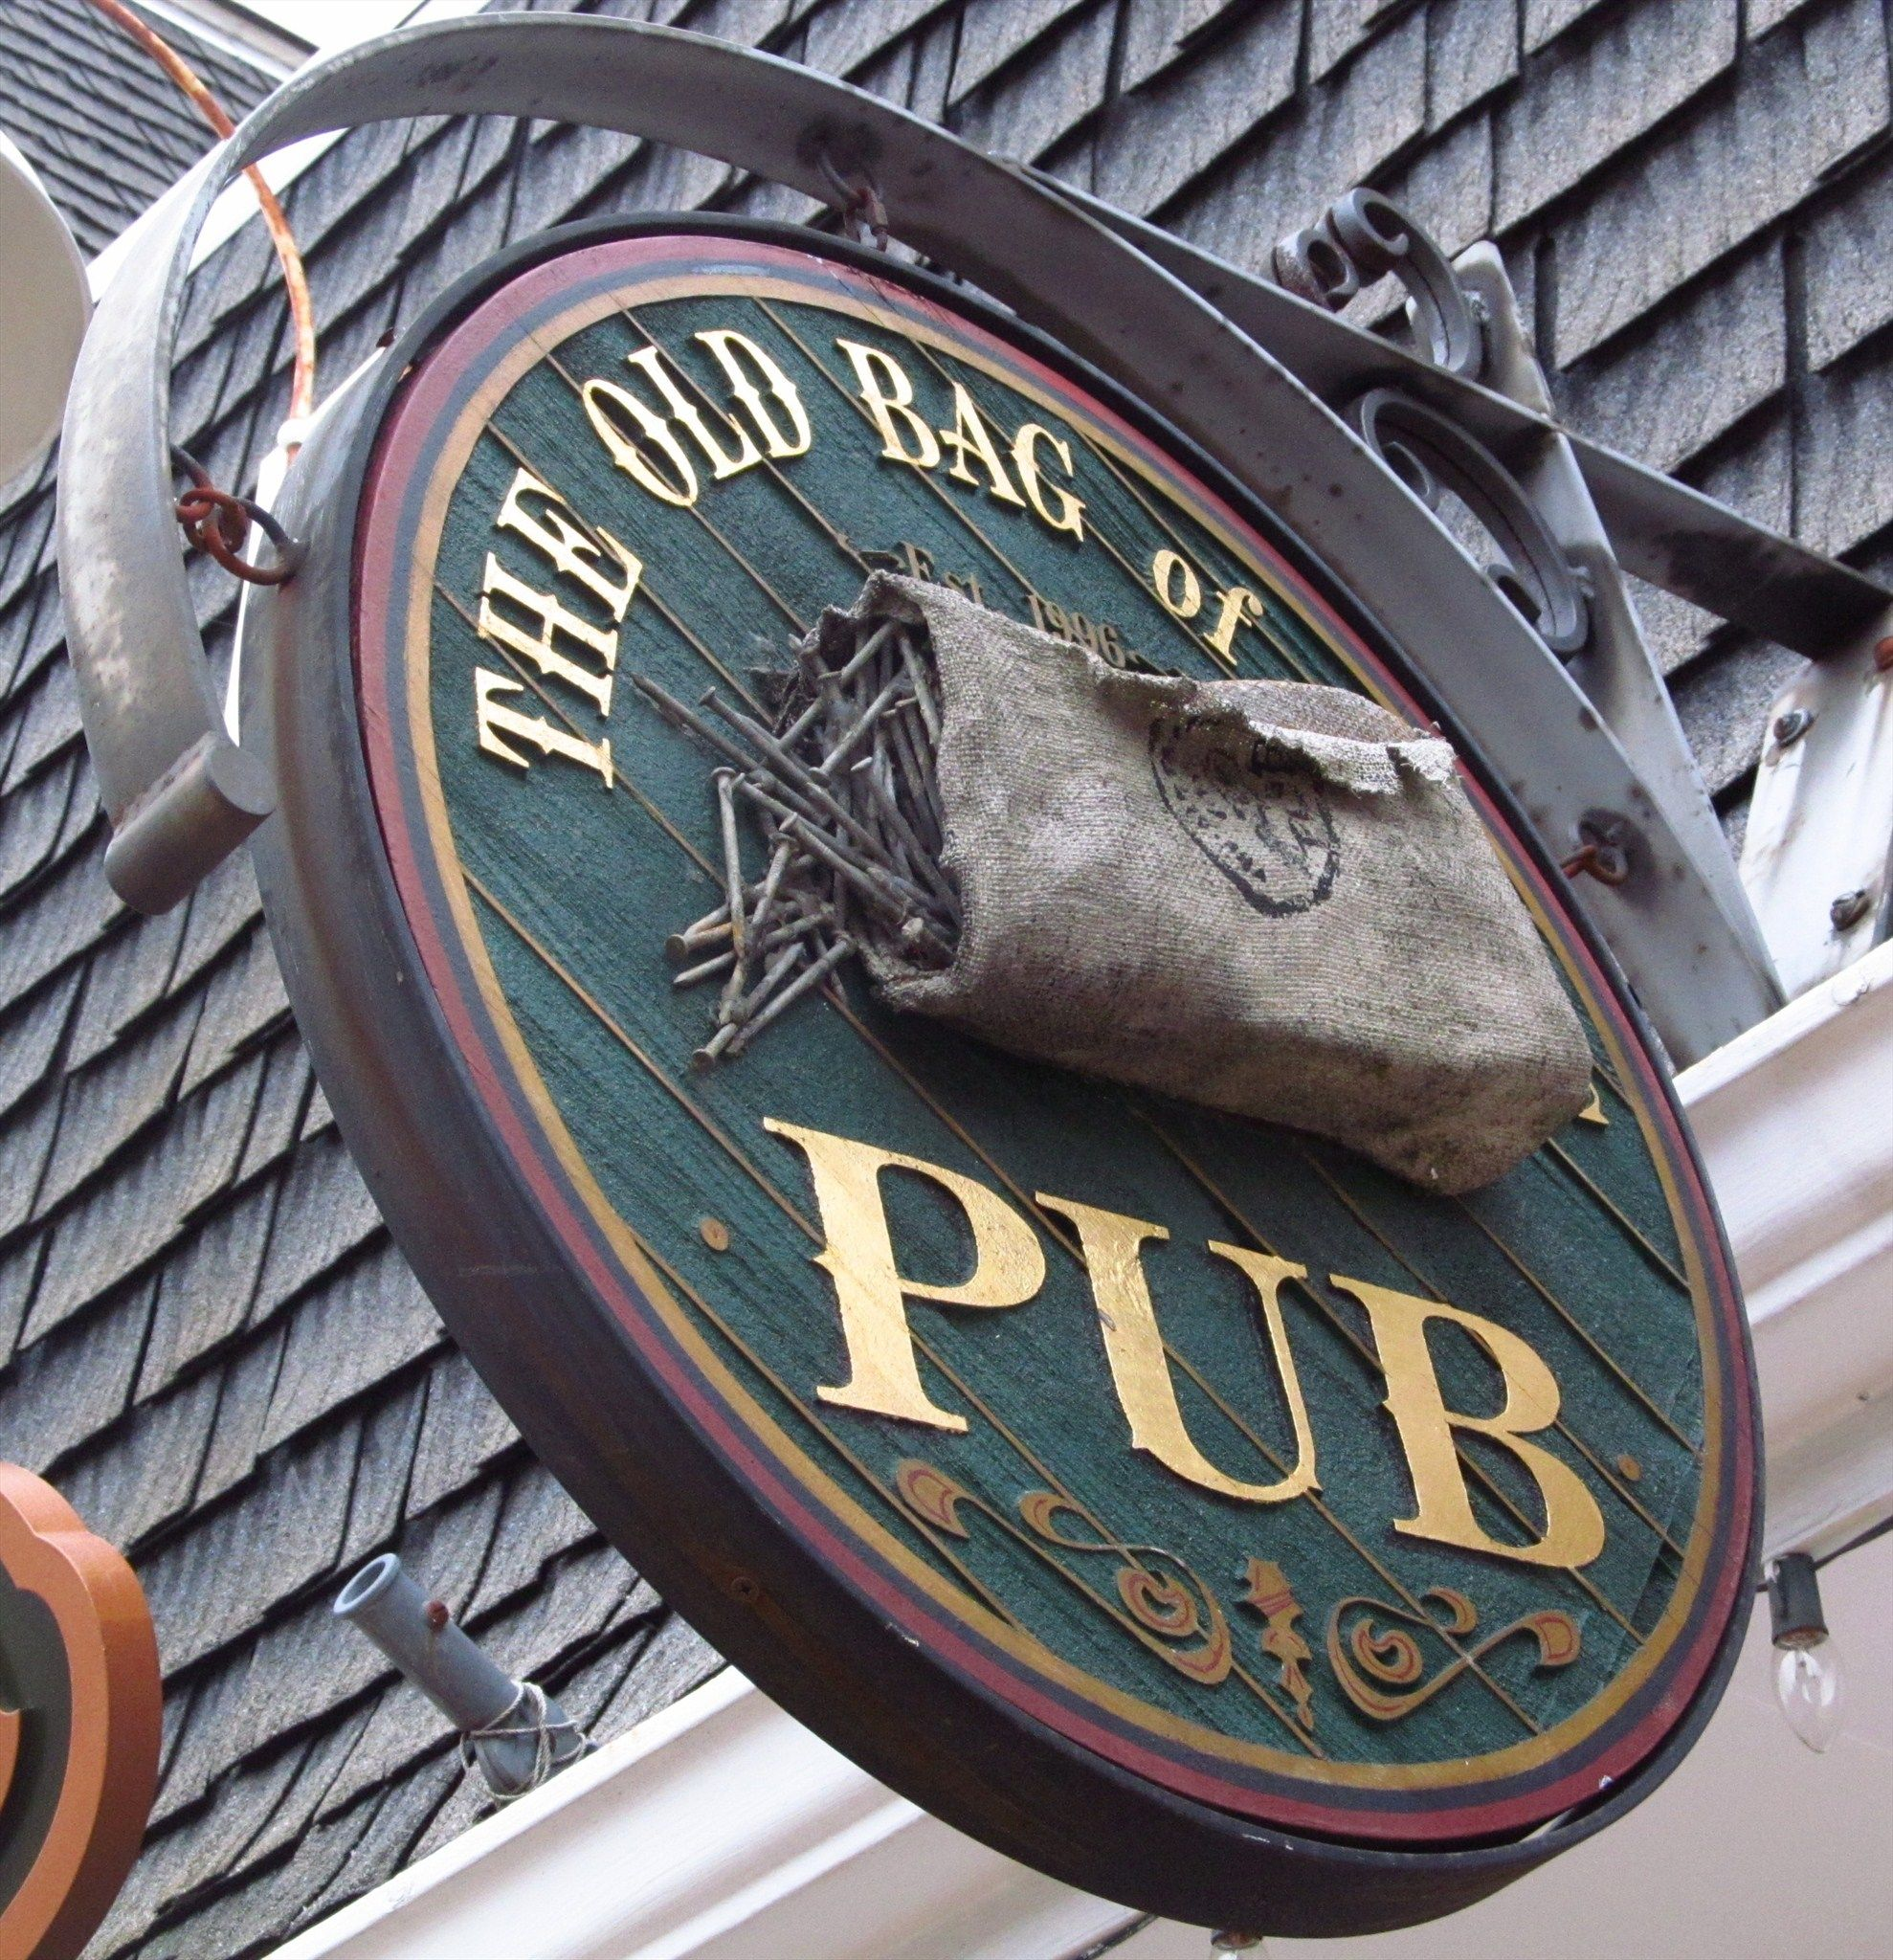 The Old Bag Of Nails Pub Worthington Ohio Fish And Chips Don T Get Any Better Bag Of Nails Worthington Ohio Worthington